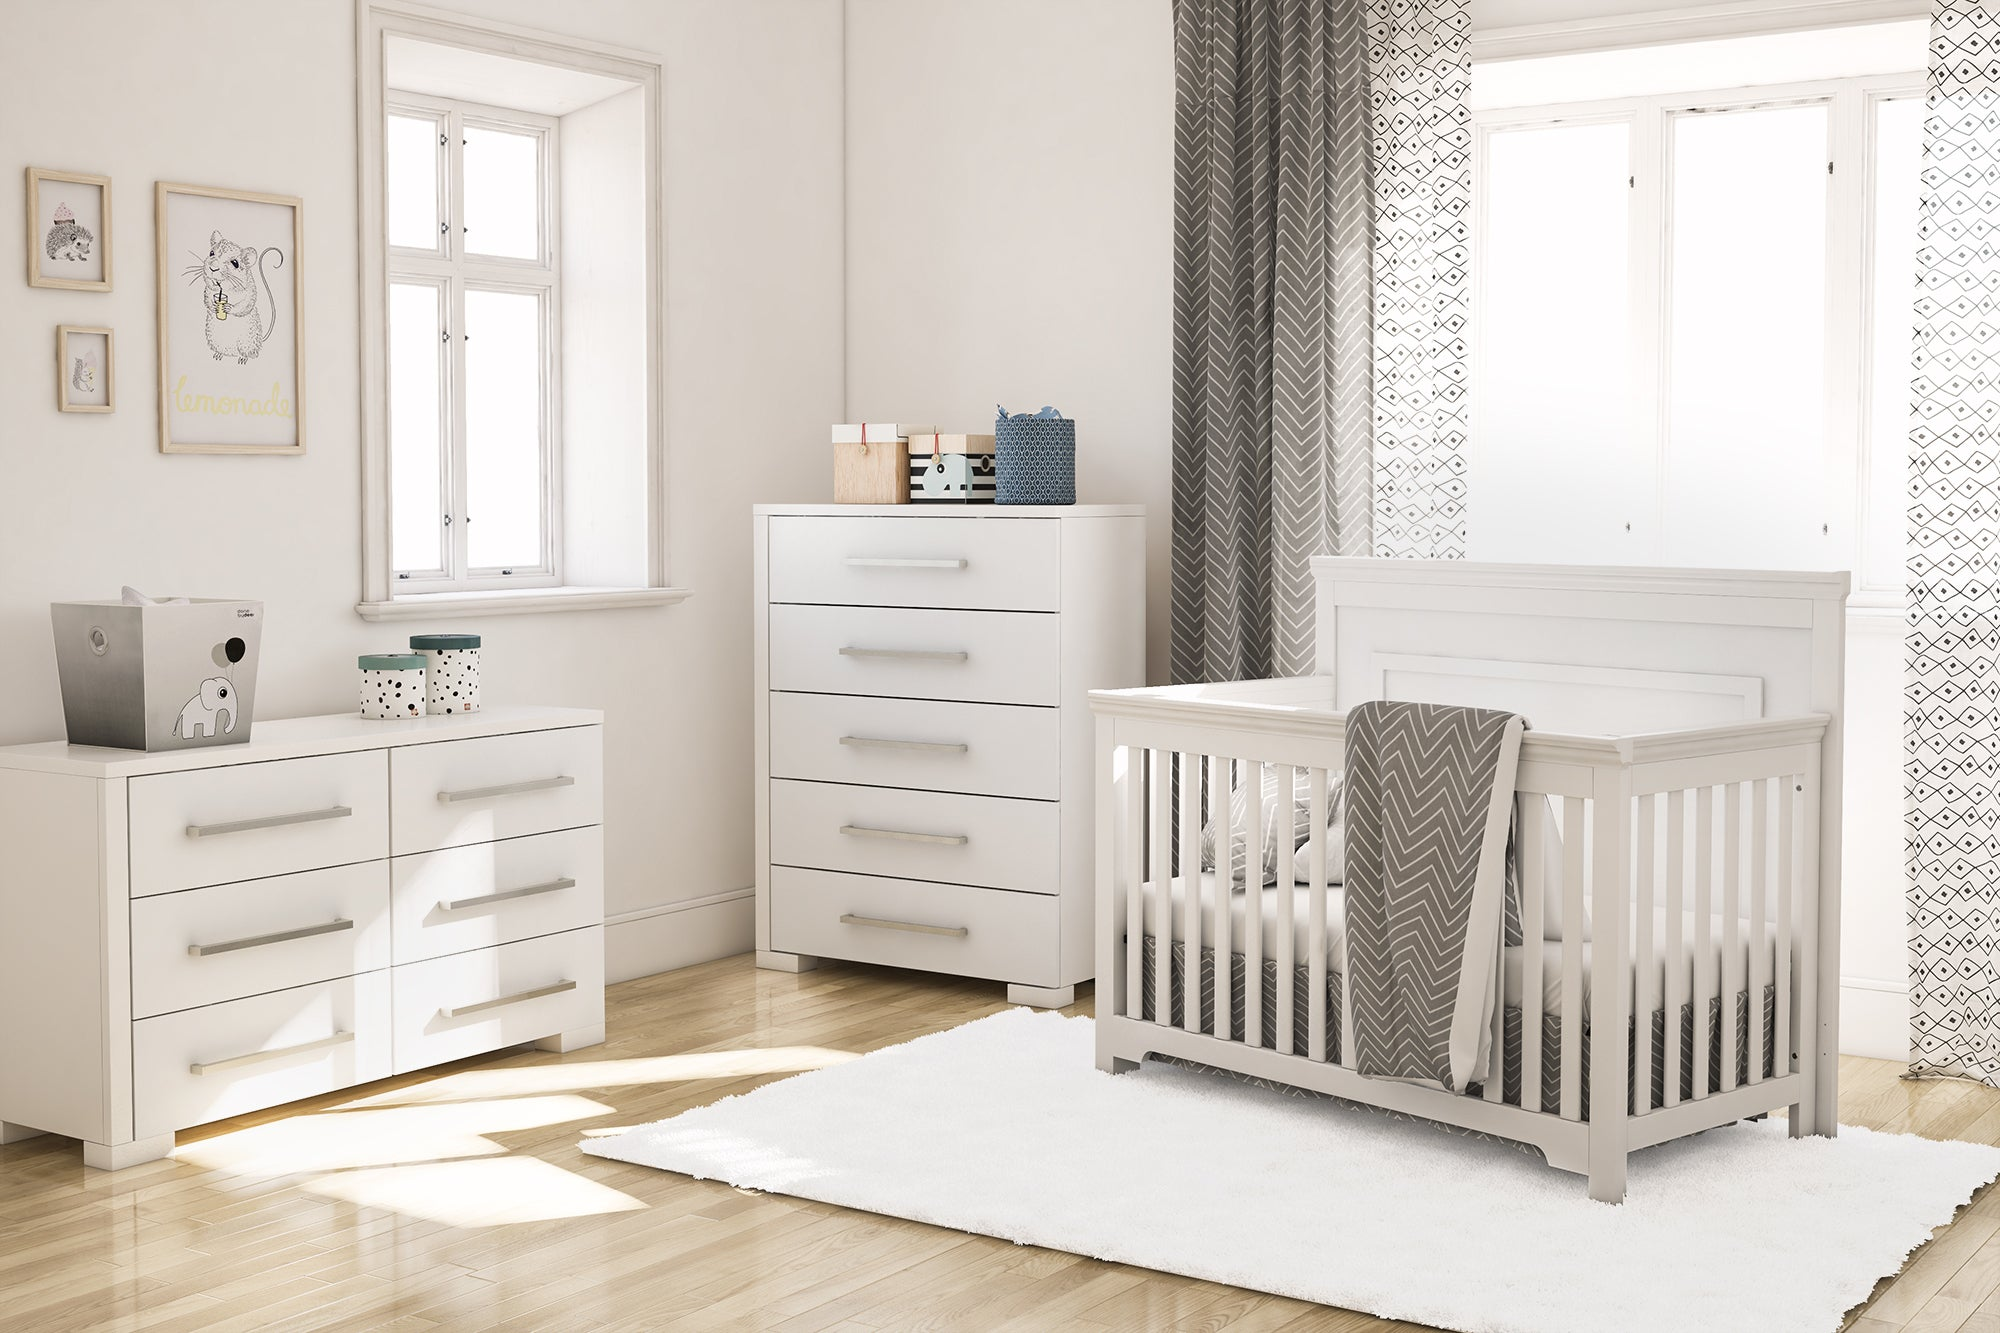 Baby bed - Double desk with 6 drawers - Desk with 5 drawers